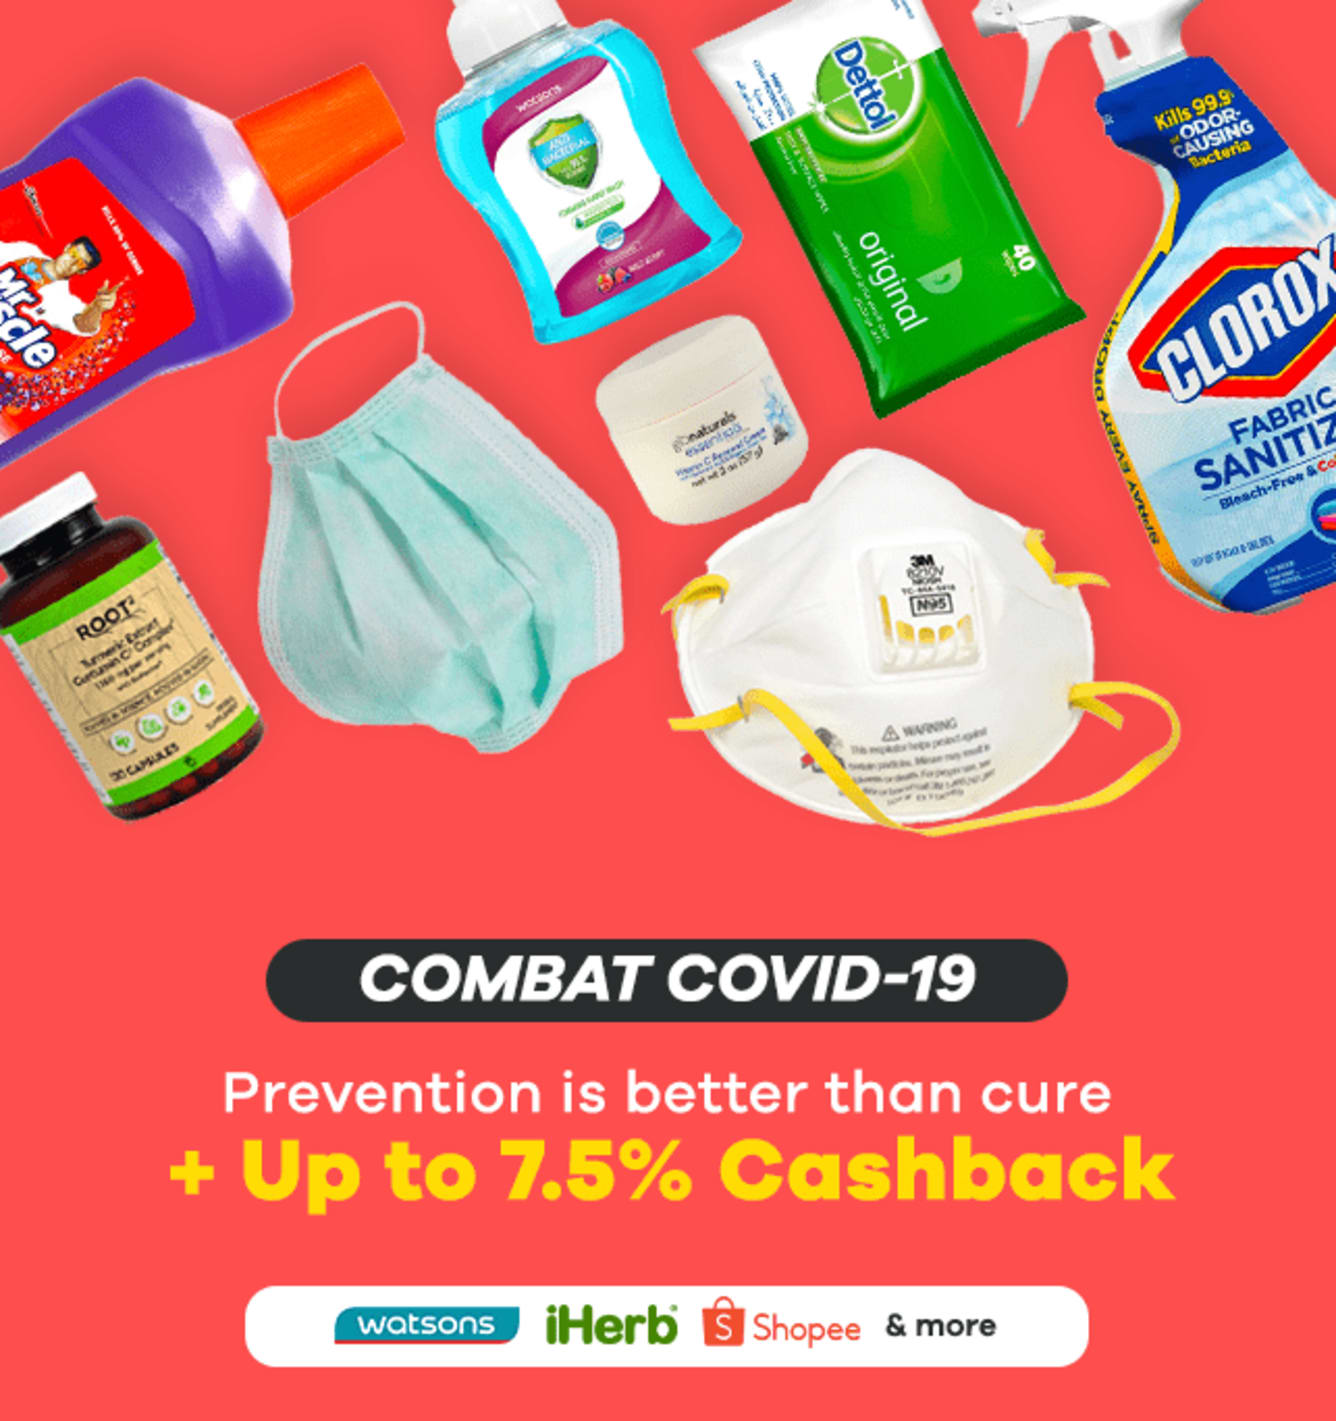 COVID-19 Survival kit + Up to 15% Cashback